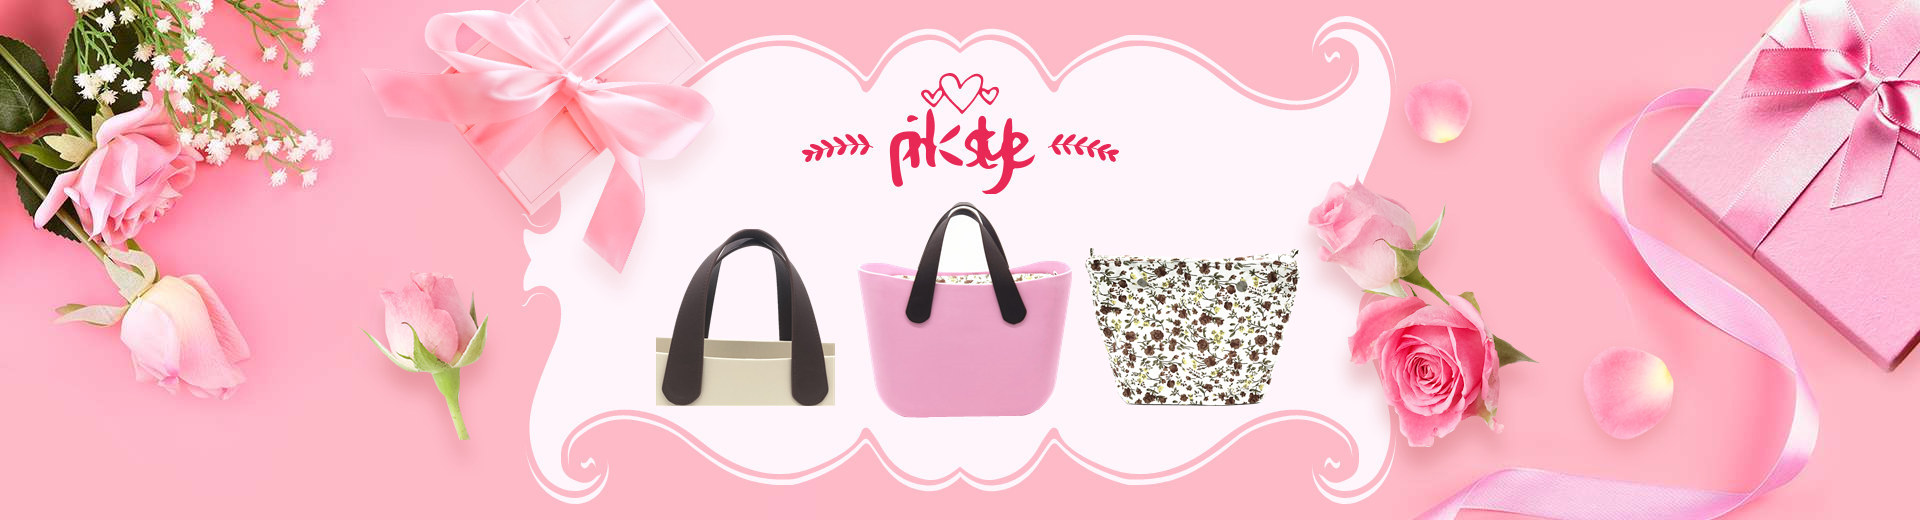 Eva Bag Store Small Orders Online Store Hot Selling And More On